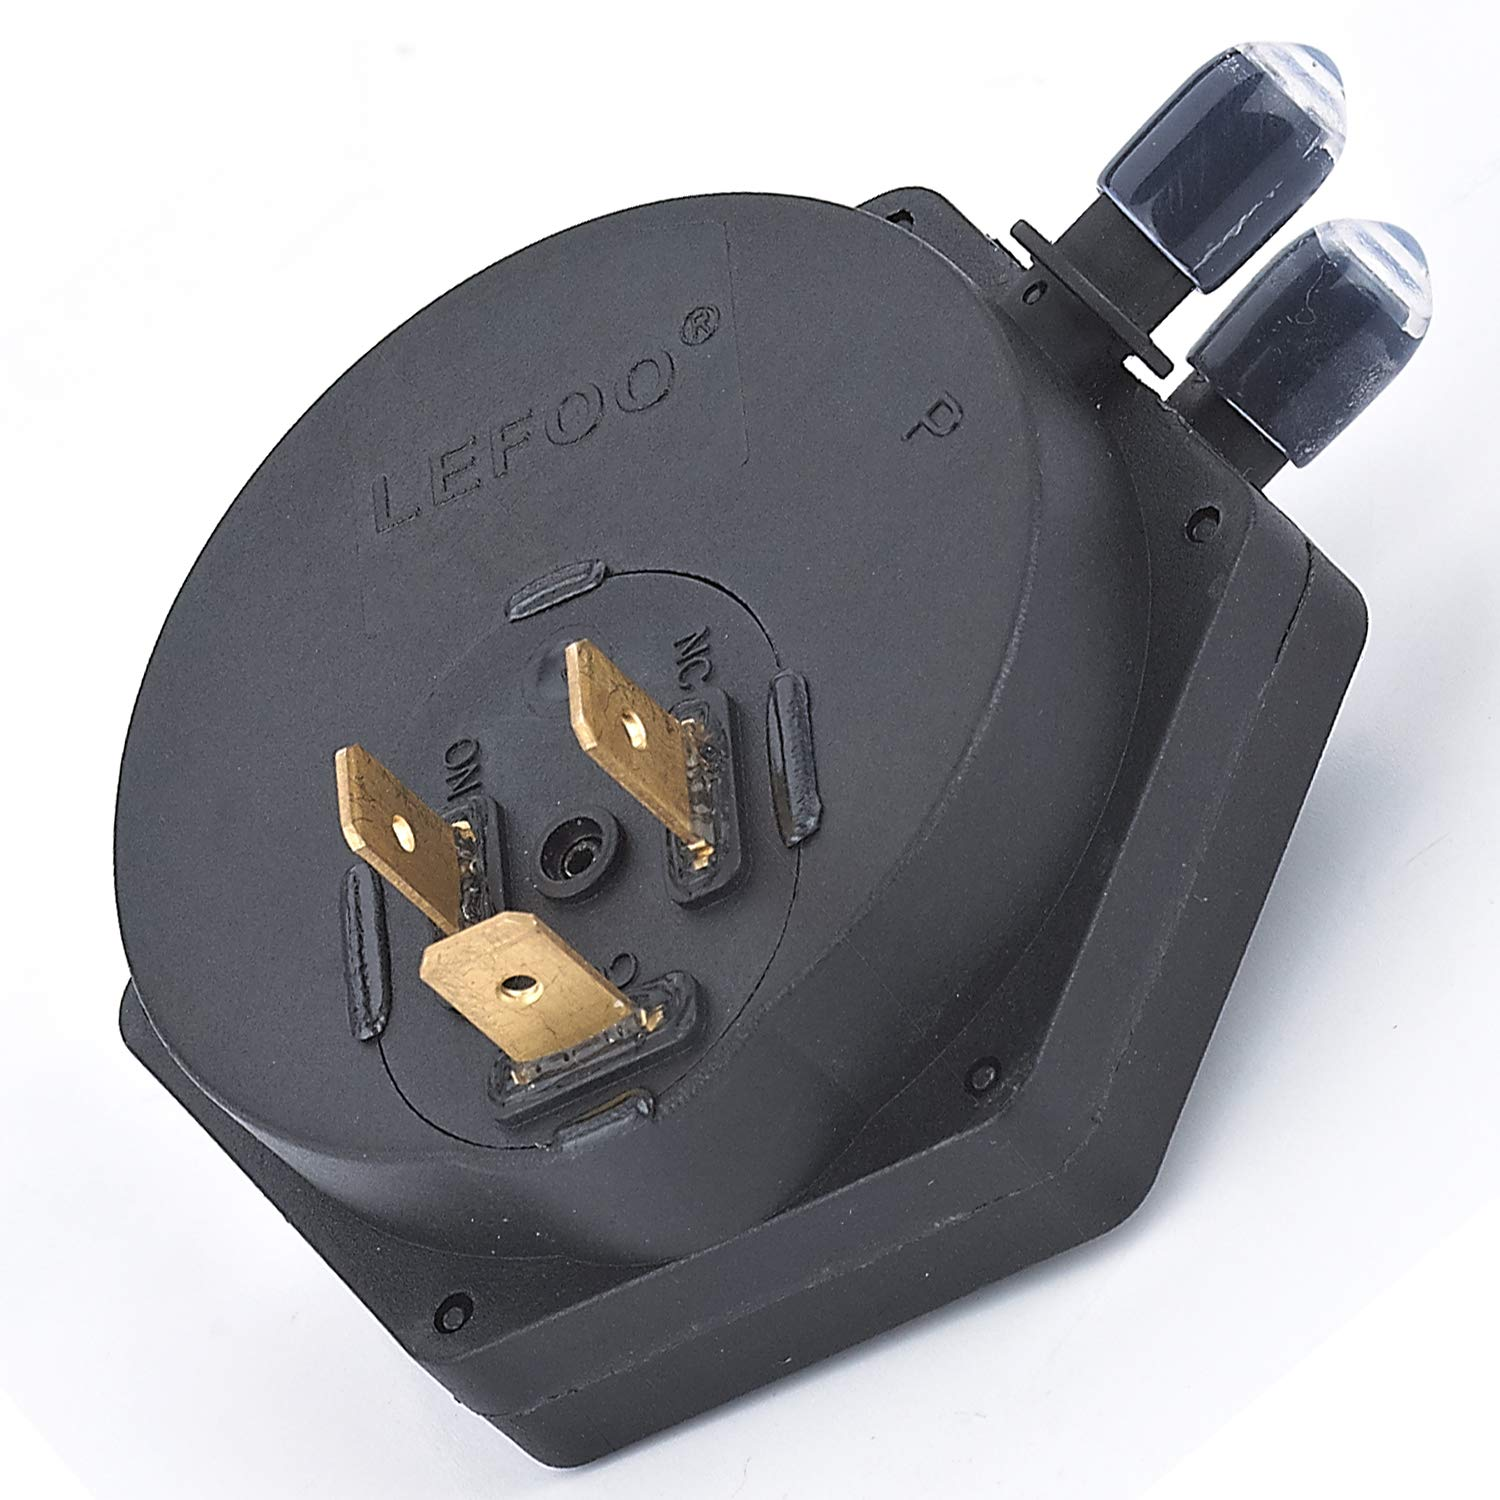 LEFOO LF31 Air Differential Pressure Switch Fall Pressure 150pa For HVAC System Or Water Heater